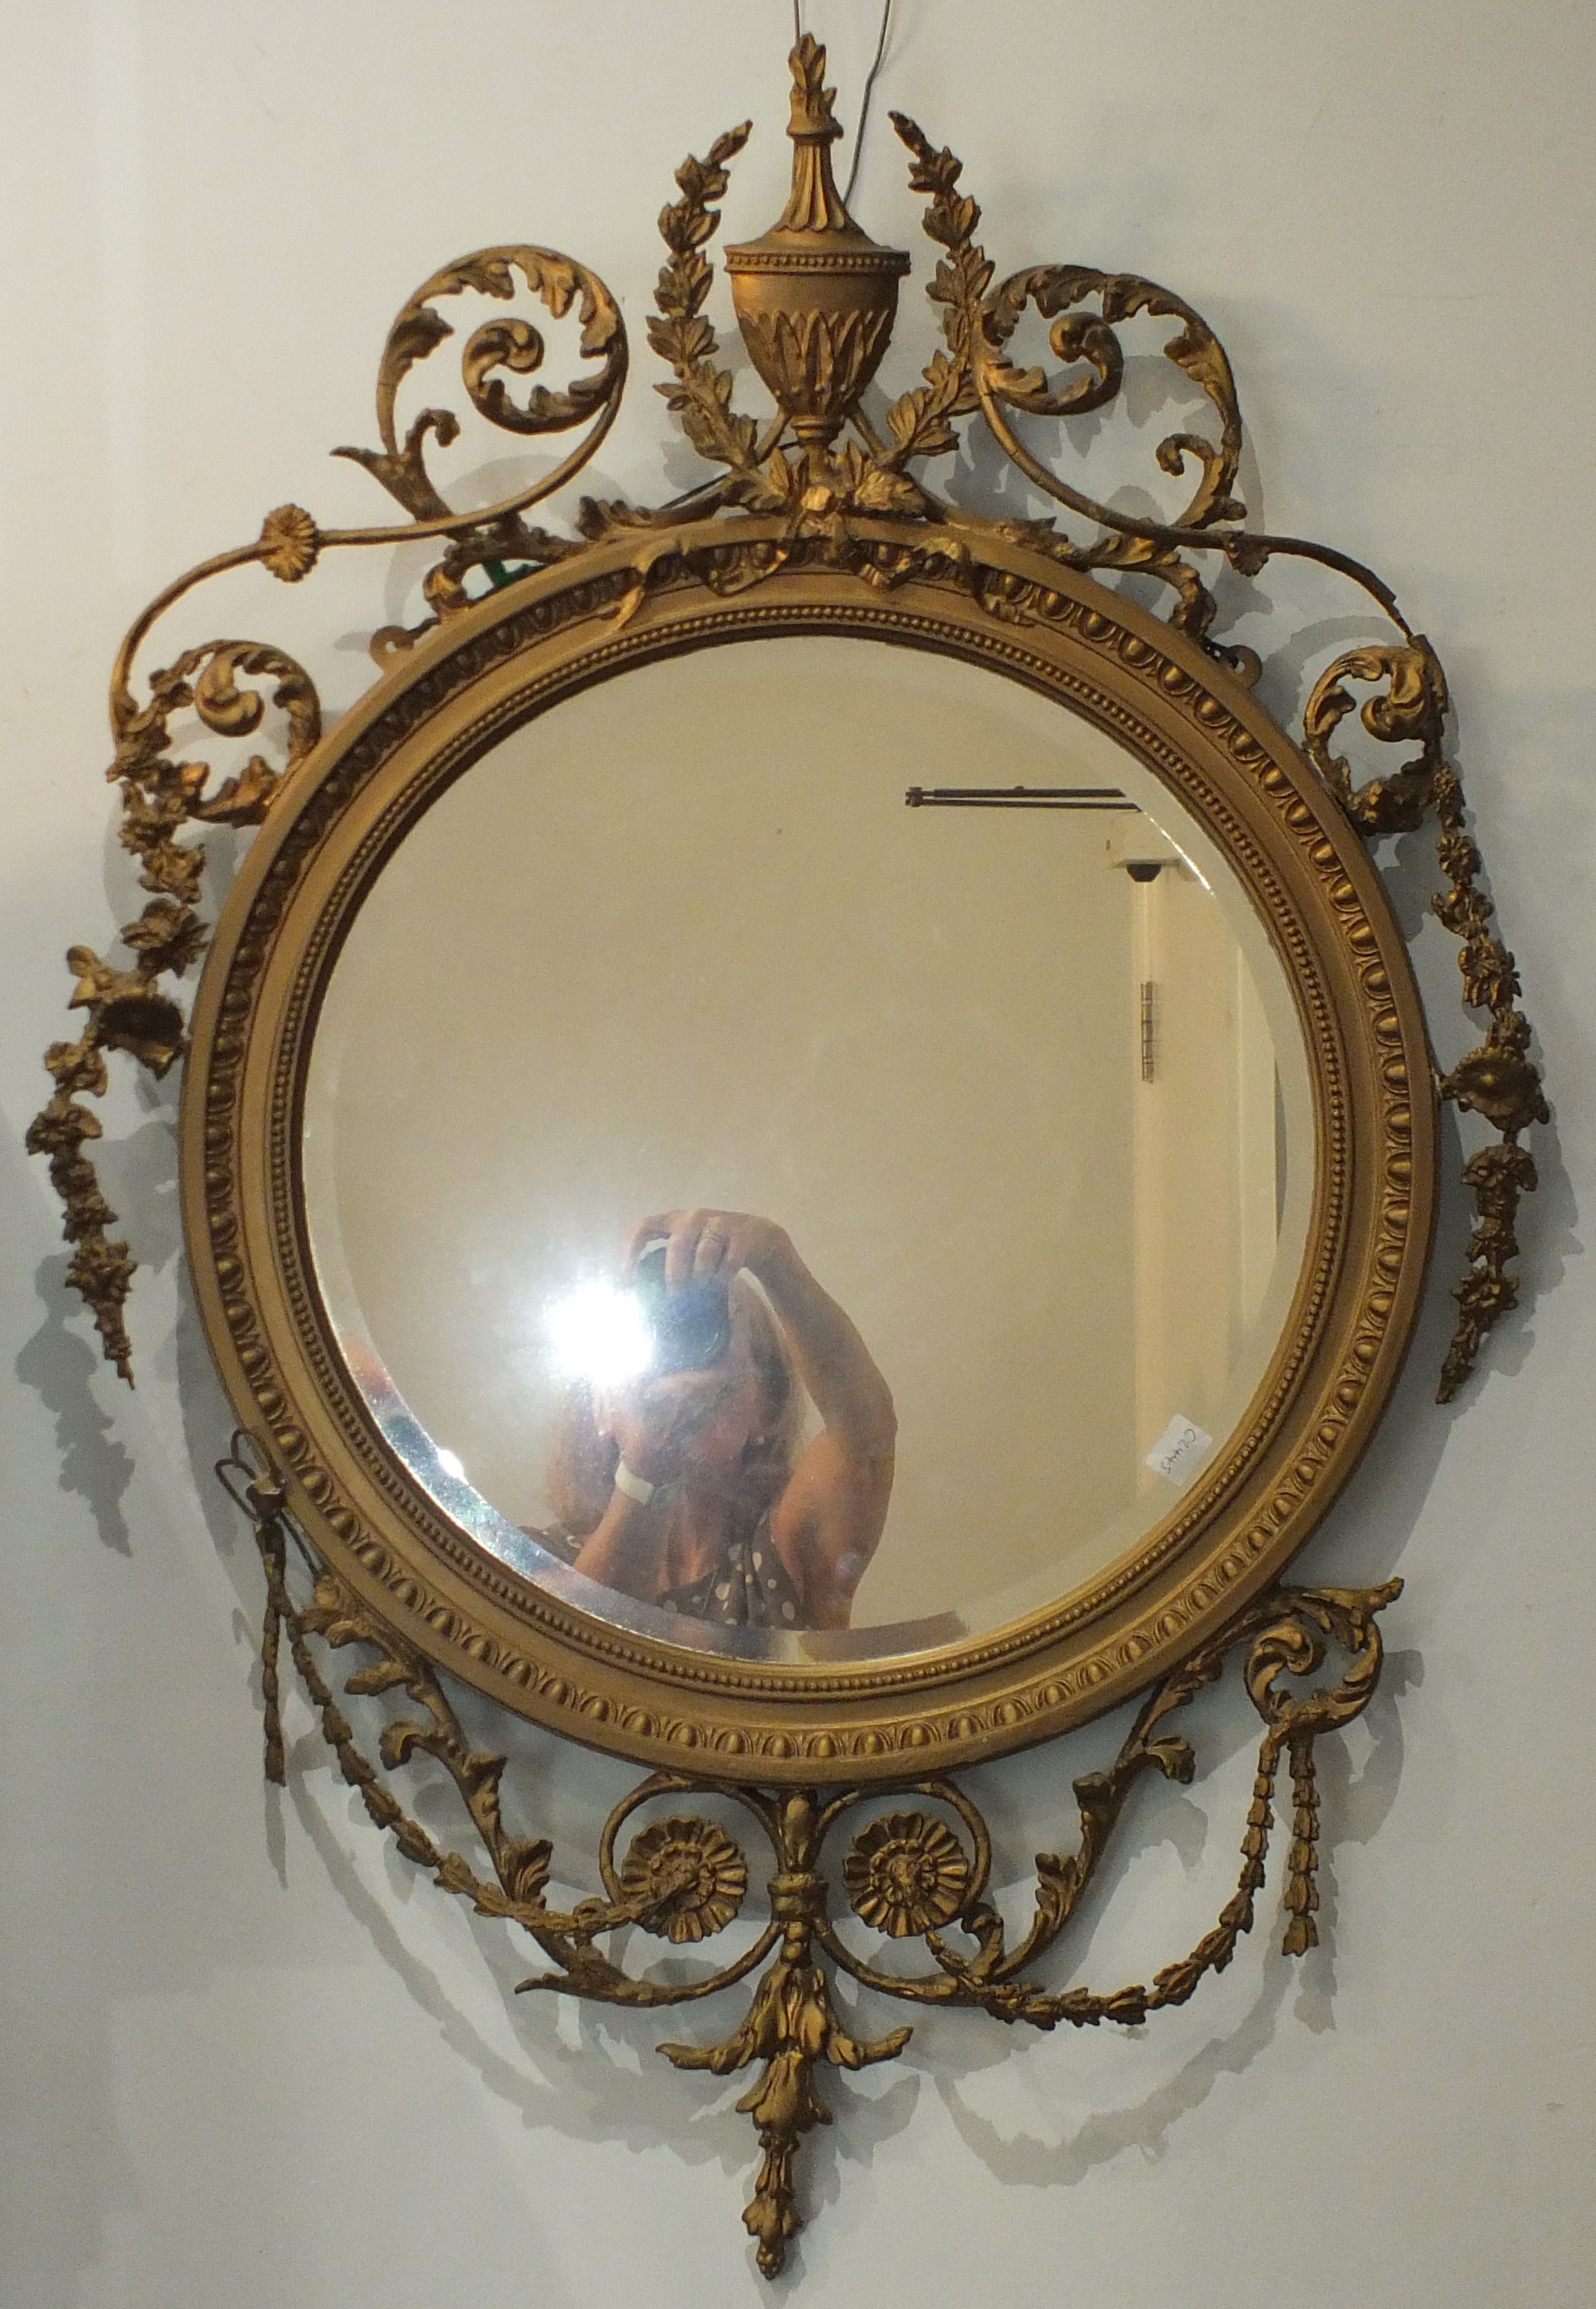 A pair of Victorian Adams-style circular gilt gesso wall mirrors, each bevelled plate with beaded - Image 2 of 2